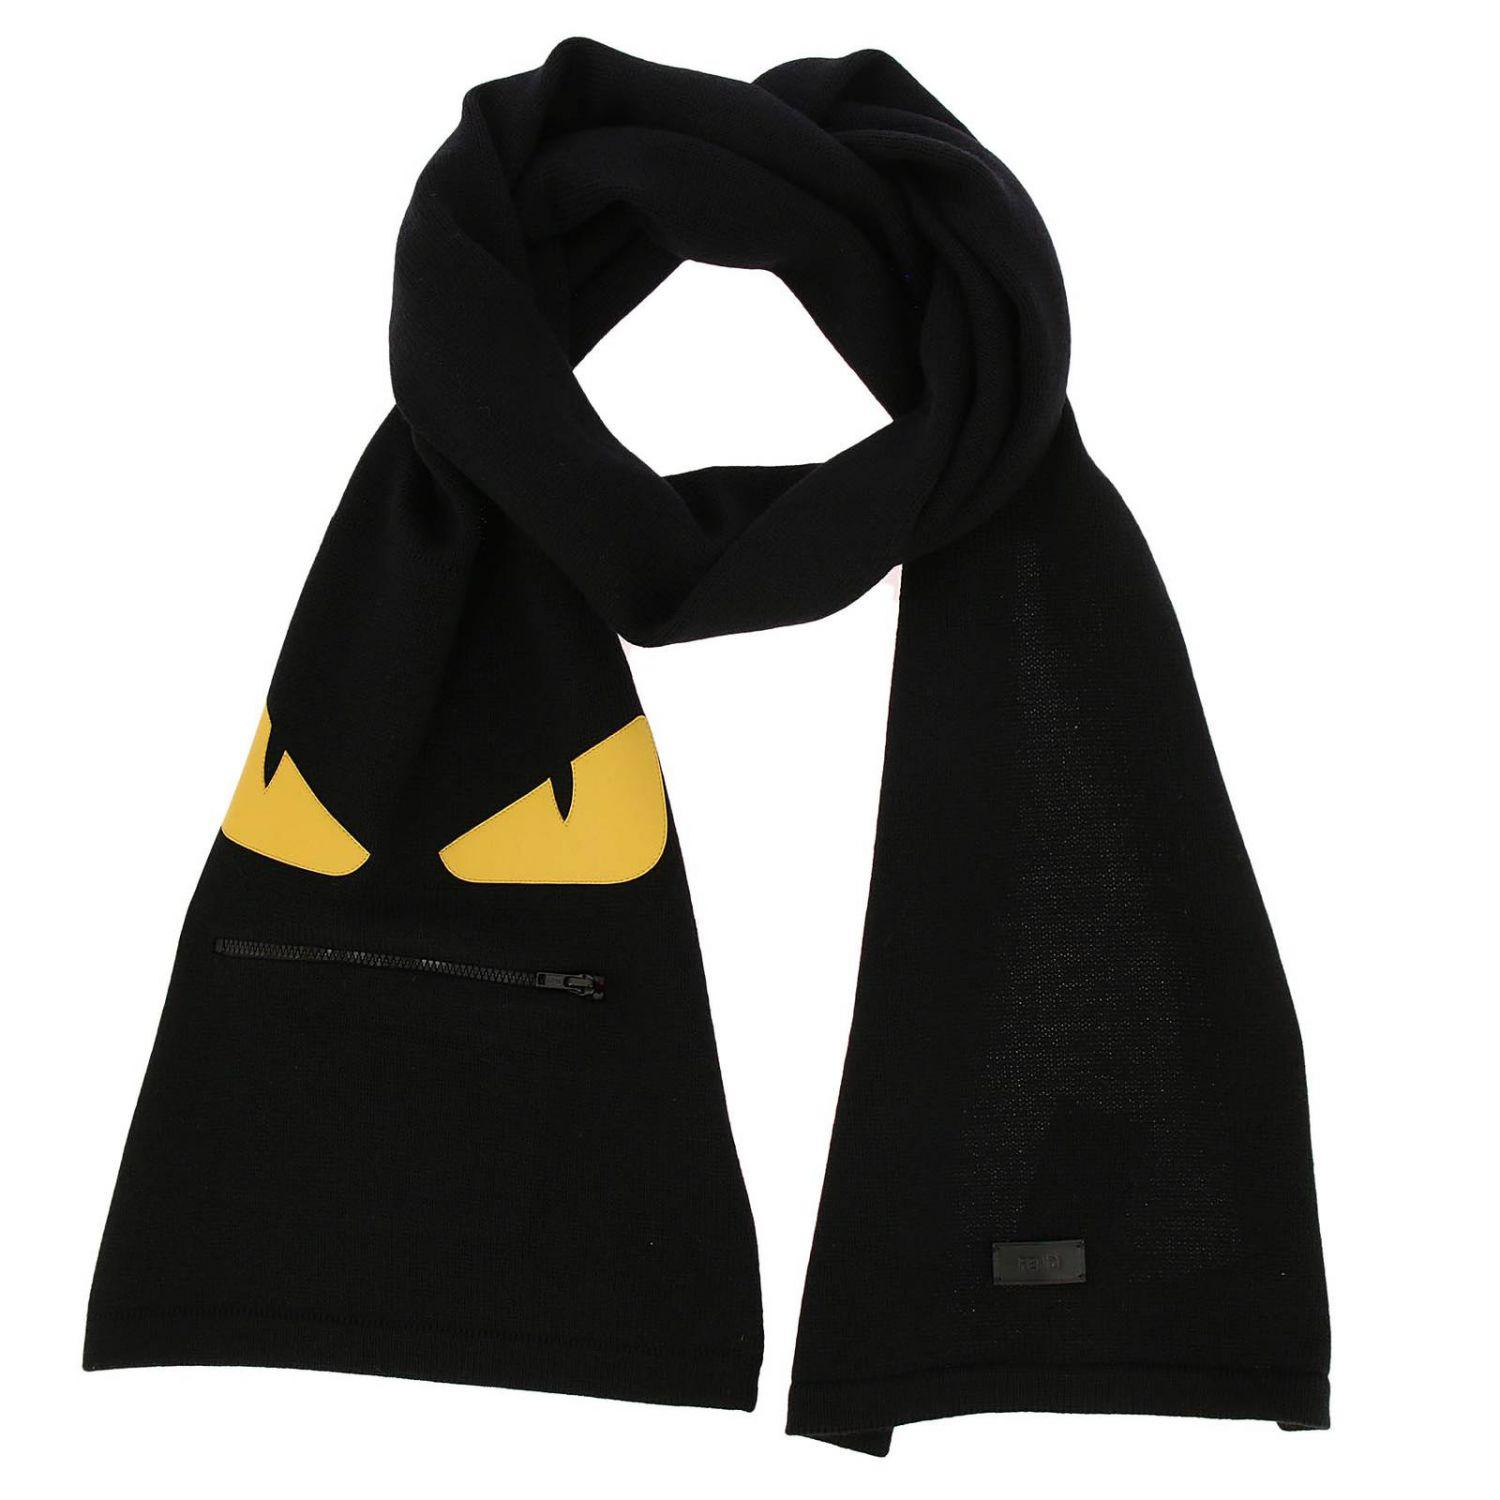 f9146e6179a Fendi - Black Monster Eyes Scarf In Pure Virgin Wool With Maxi Zip Pocket  And Eyes. View fullscreen